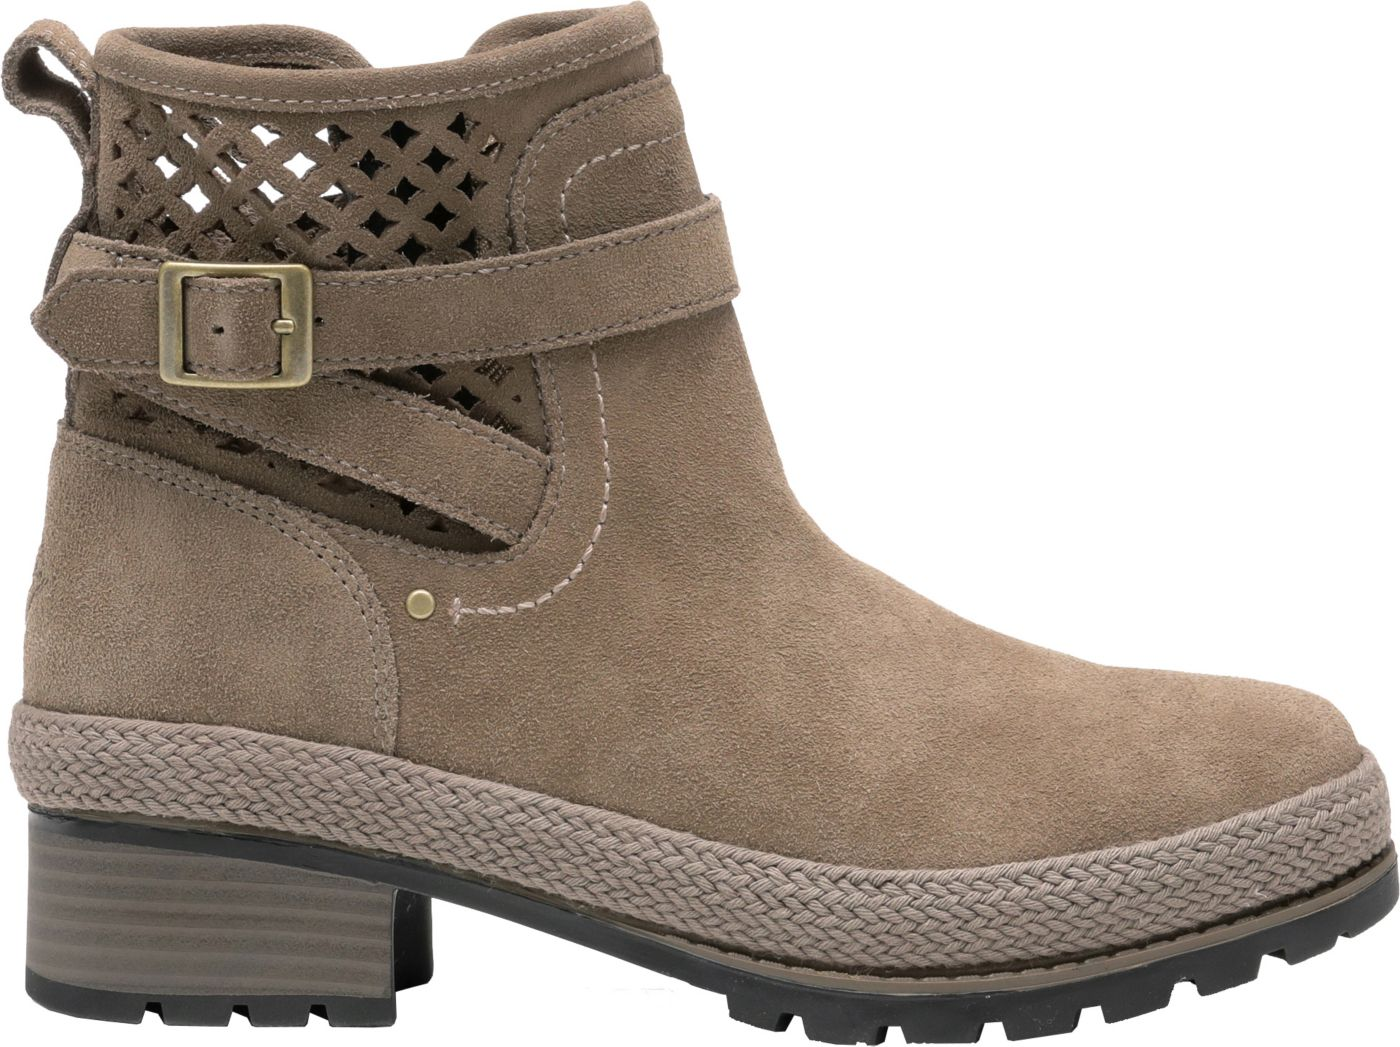 Muck Boots Women's Liberty Ankle Perforated Leather Casual Boots